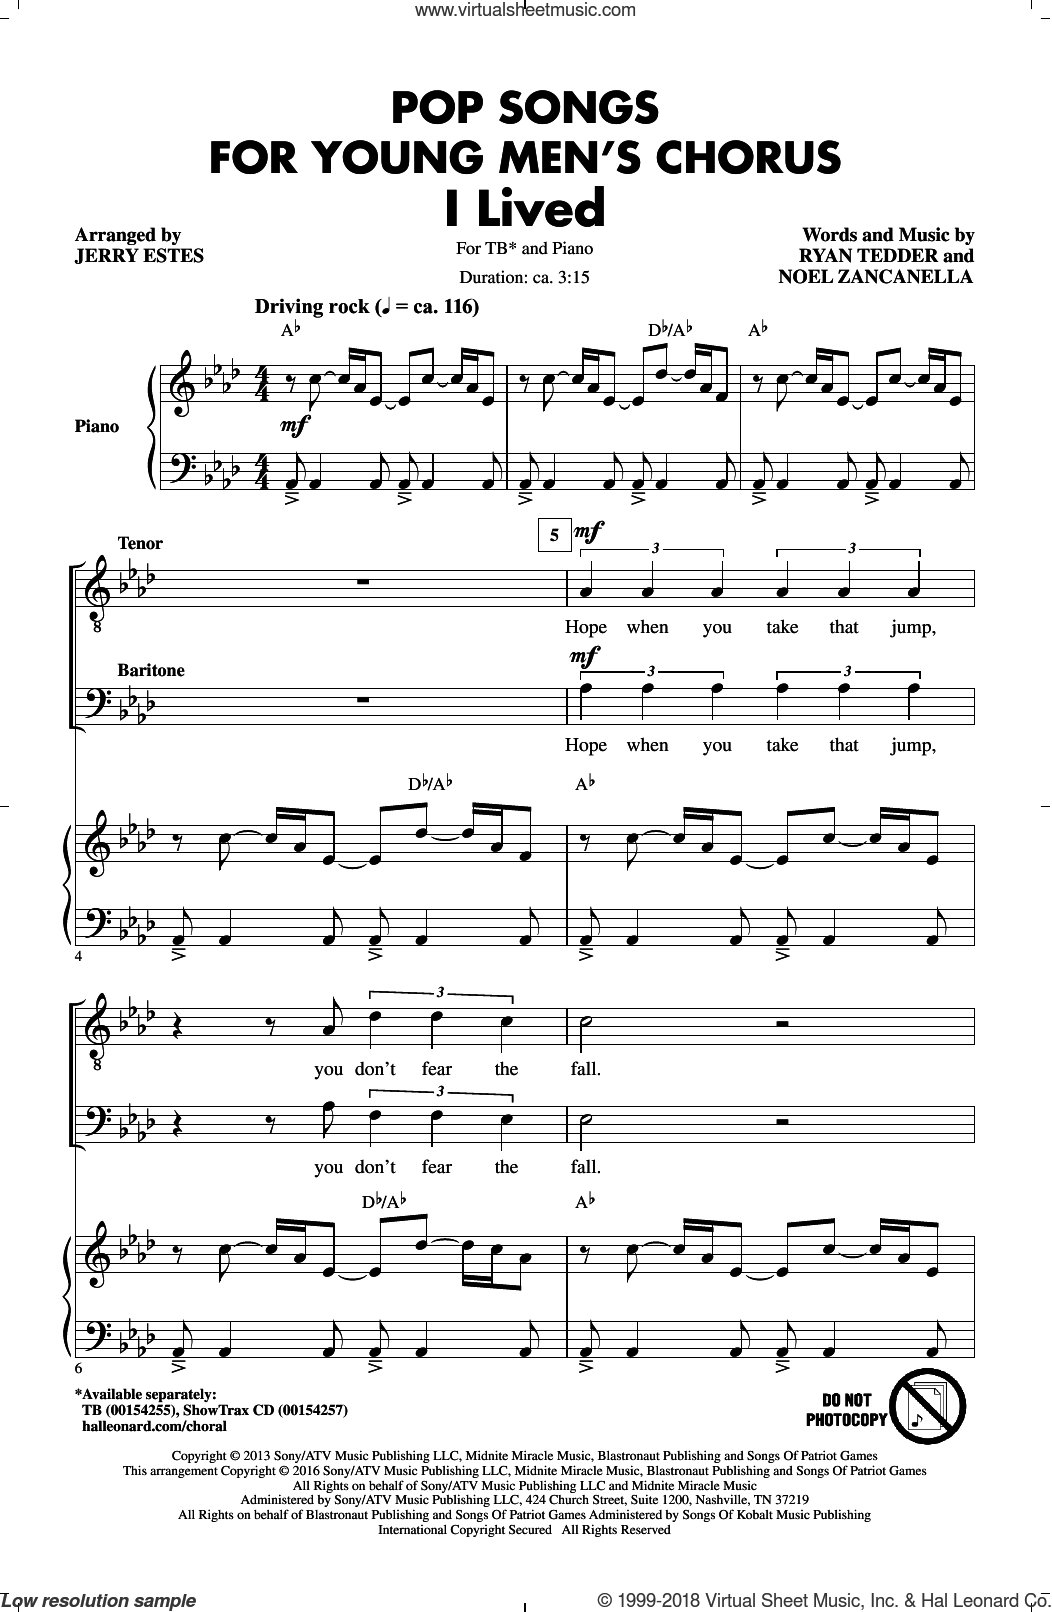 Pop Songs for Young Men's Chorus sheet music for choir (TB: tenor, bass) by Jerry Estes, Coldplay, Chris Martin, Guy Berryman, Jon Buckland and Will Champion, intermediate skill level